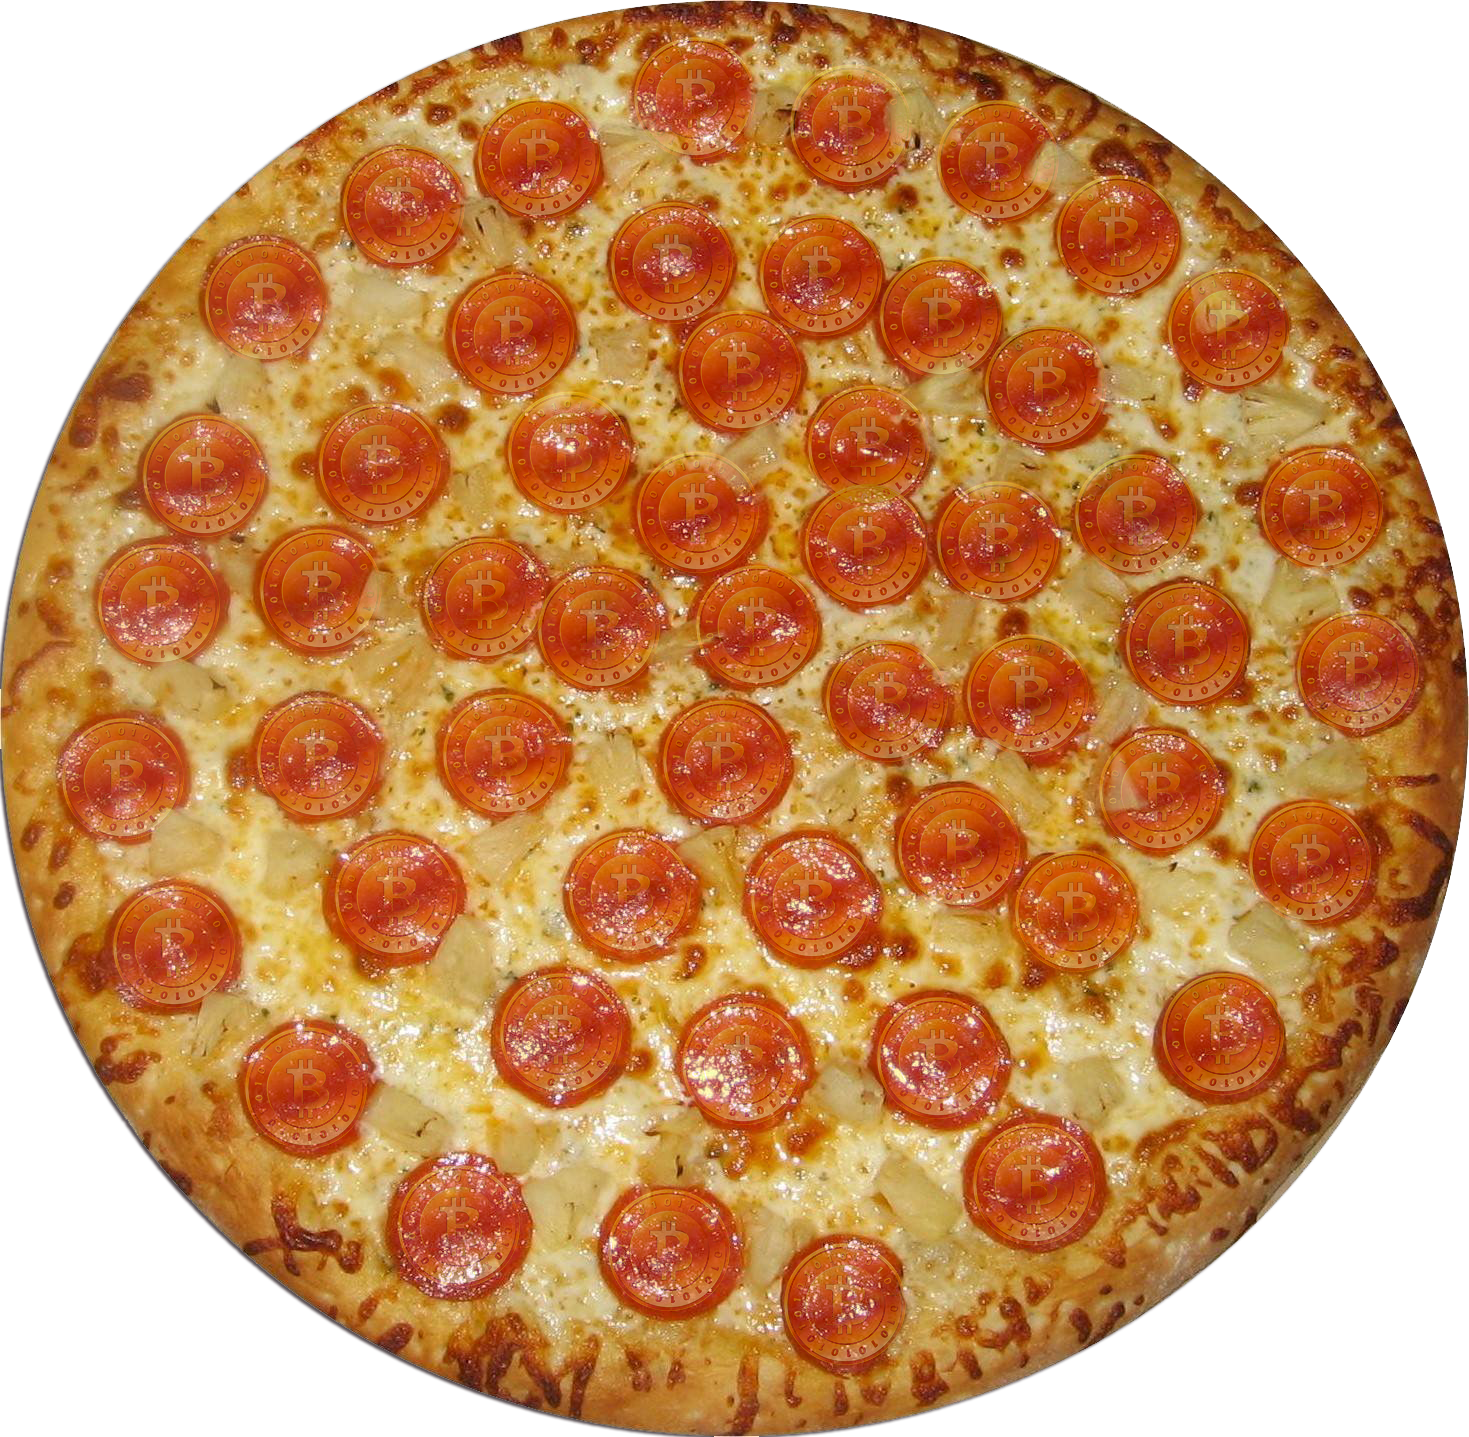 image pizza png world of smash bros lawl wiki fandom nerd clipart smiley face nerf clip art free